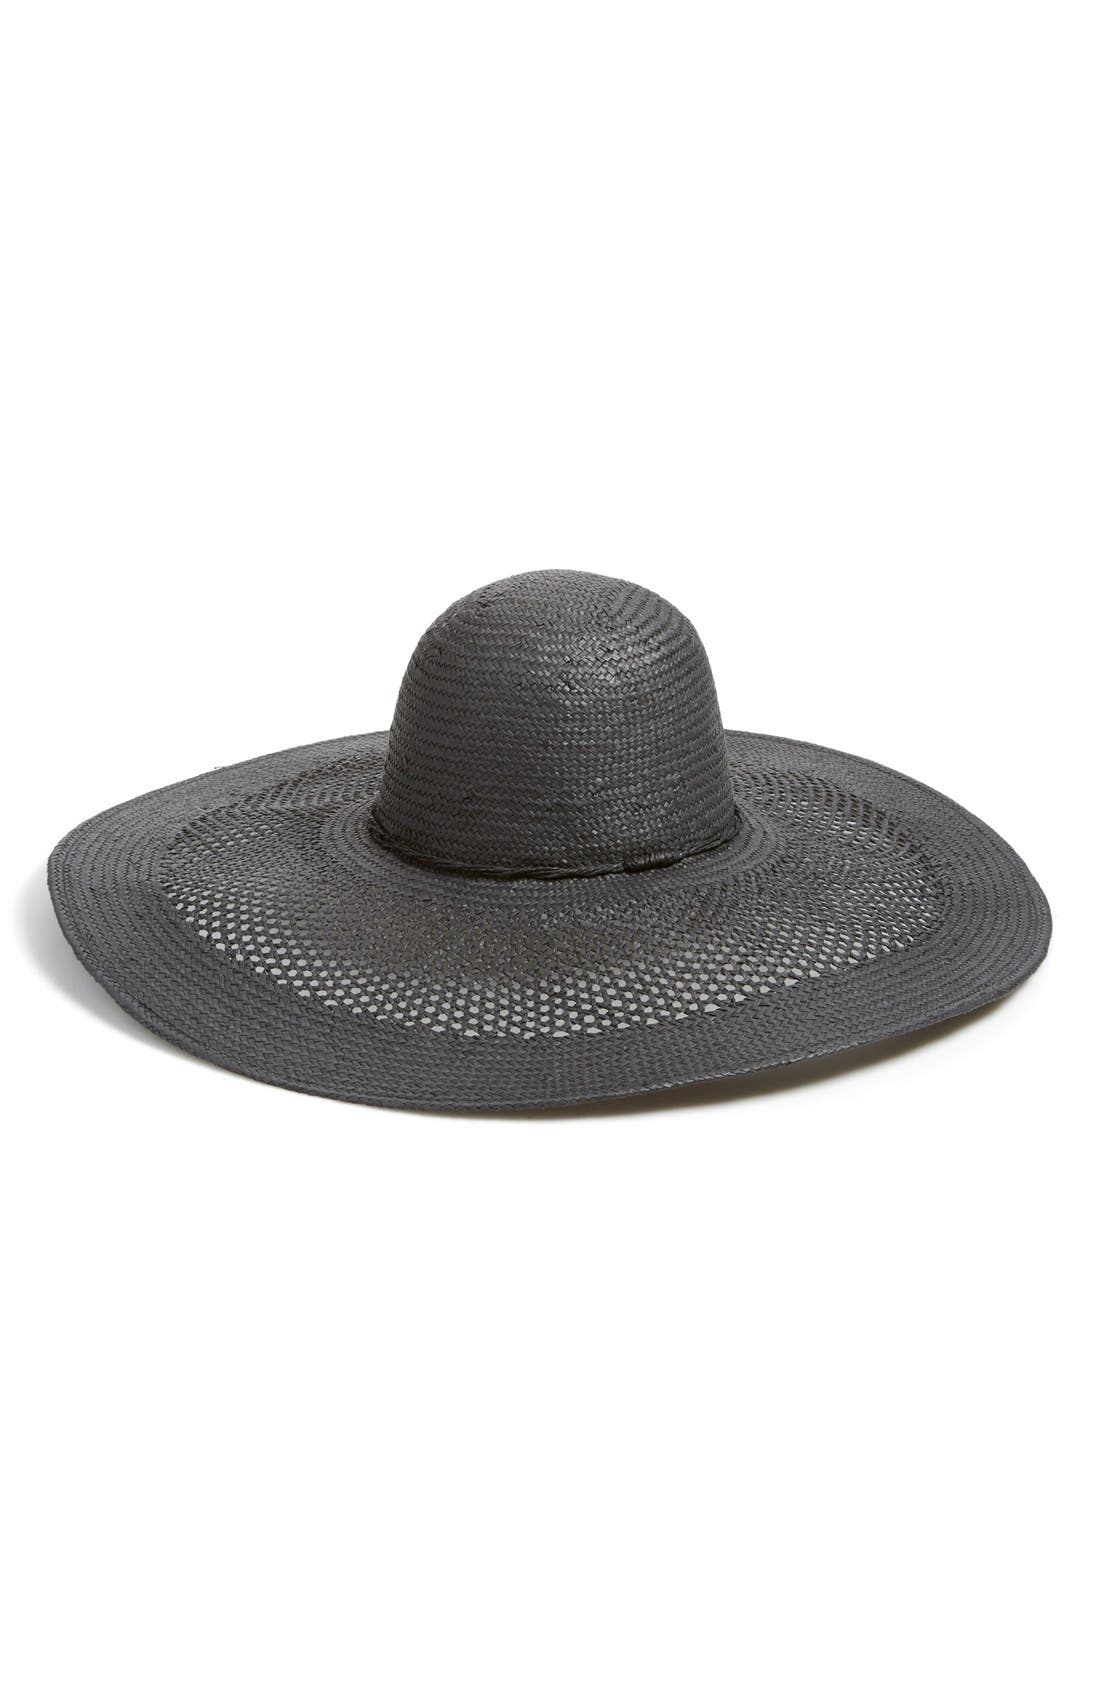 Alternate Image 1 Selected - Phase 3 Open Weave Floppy Straw Hat